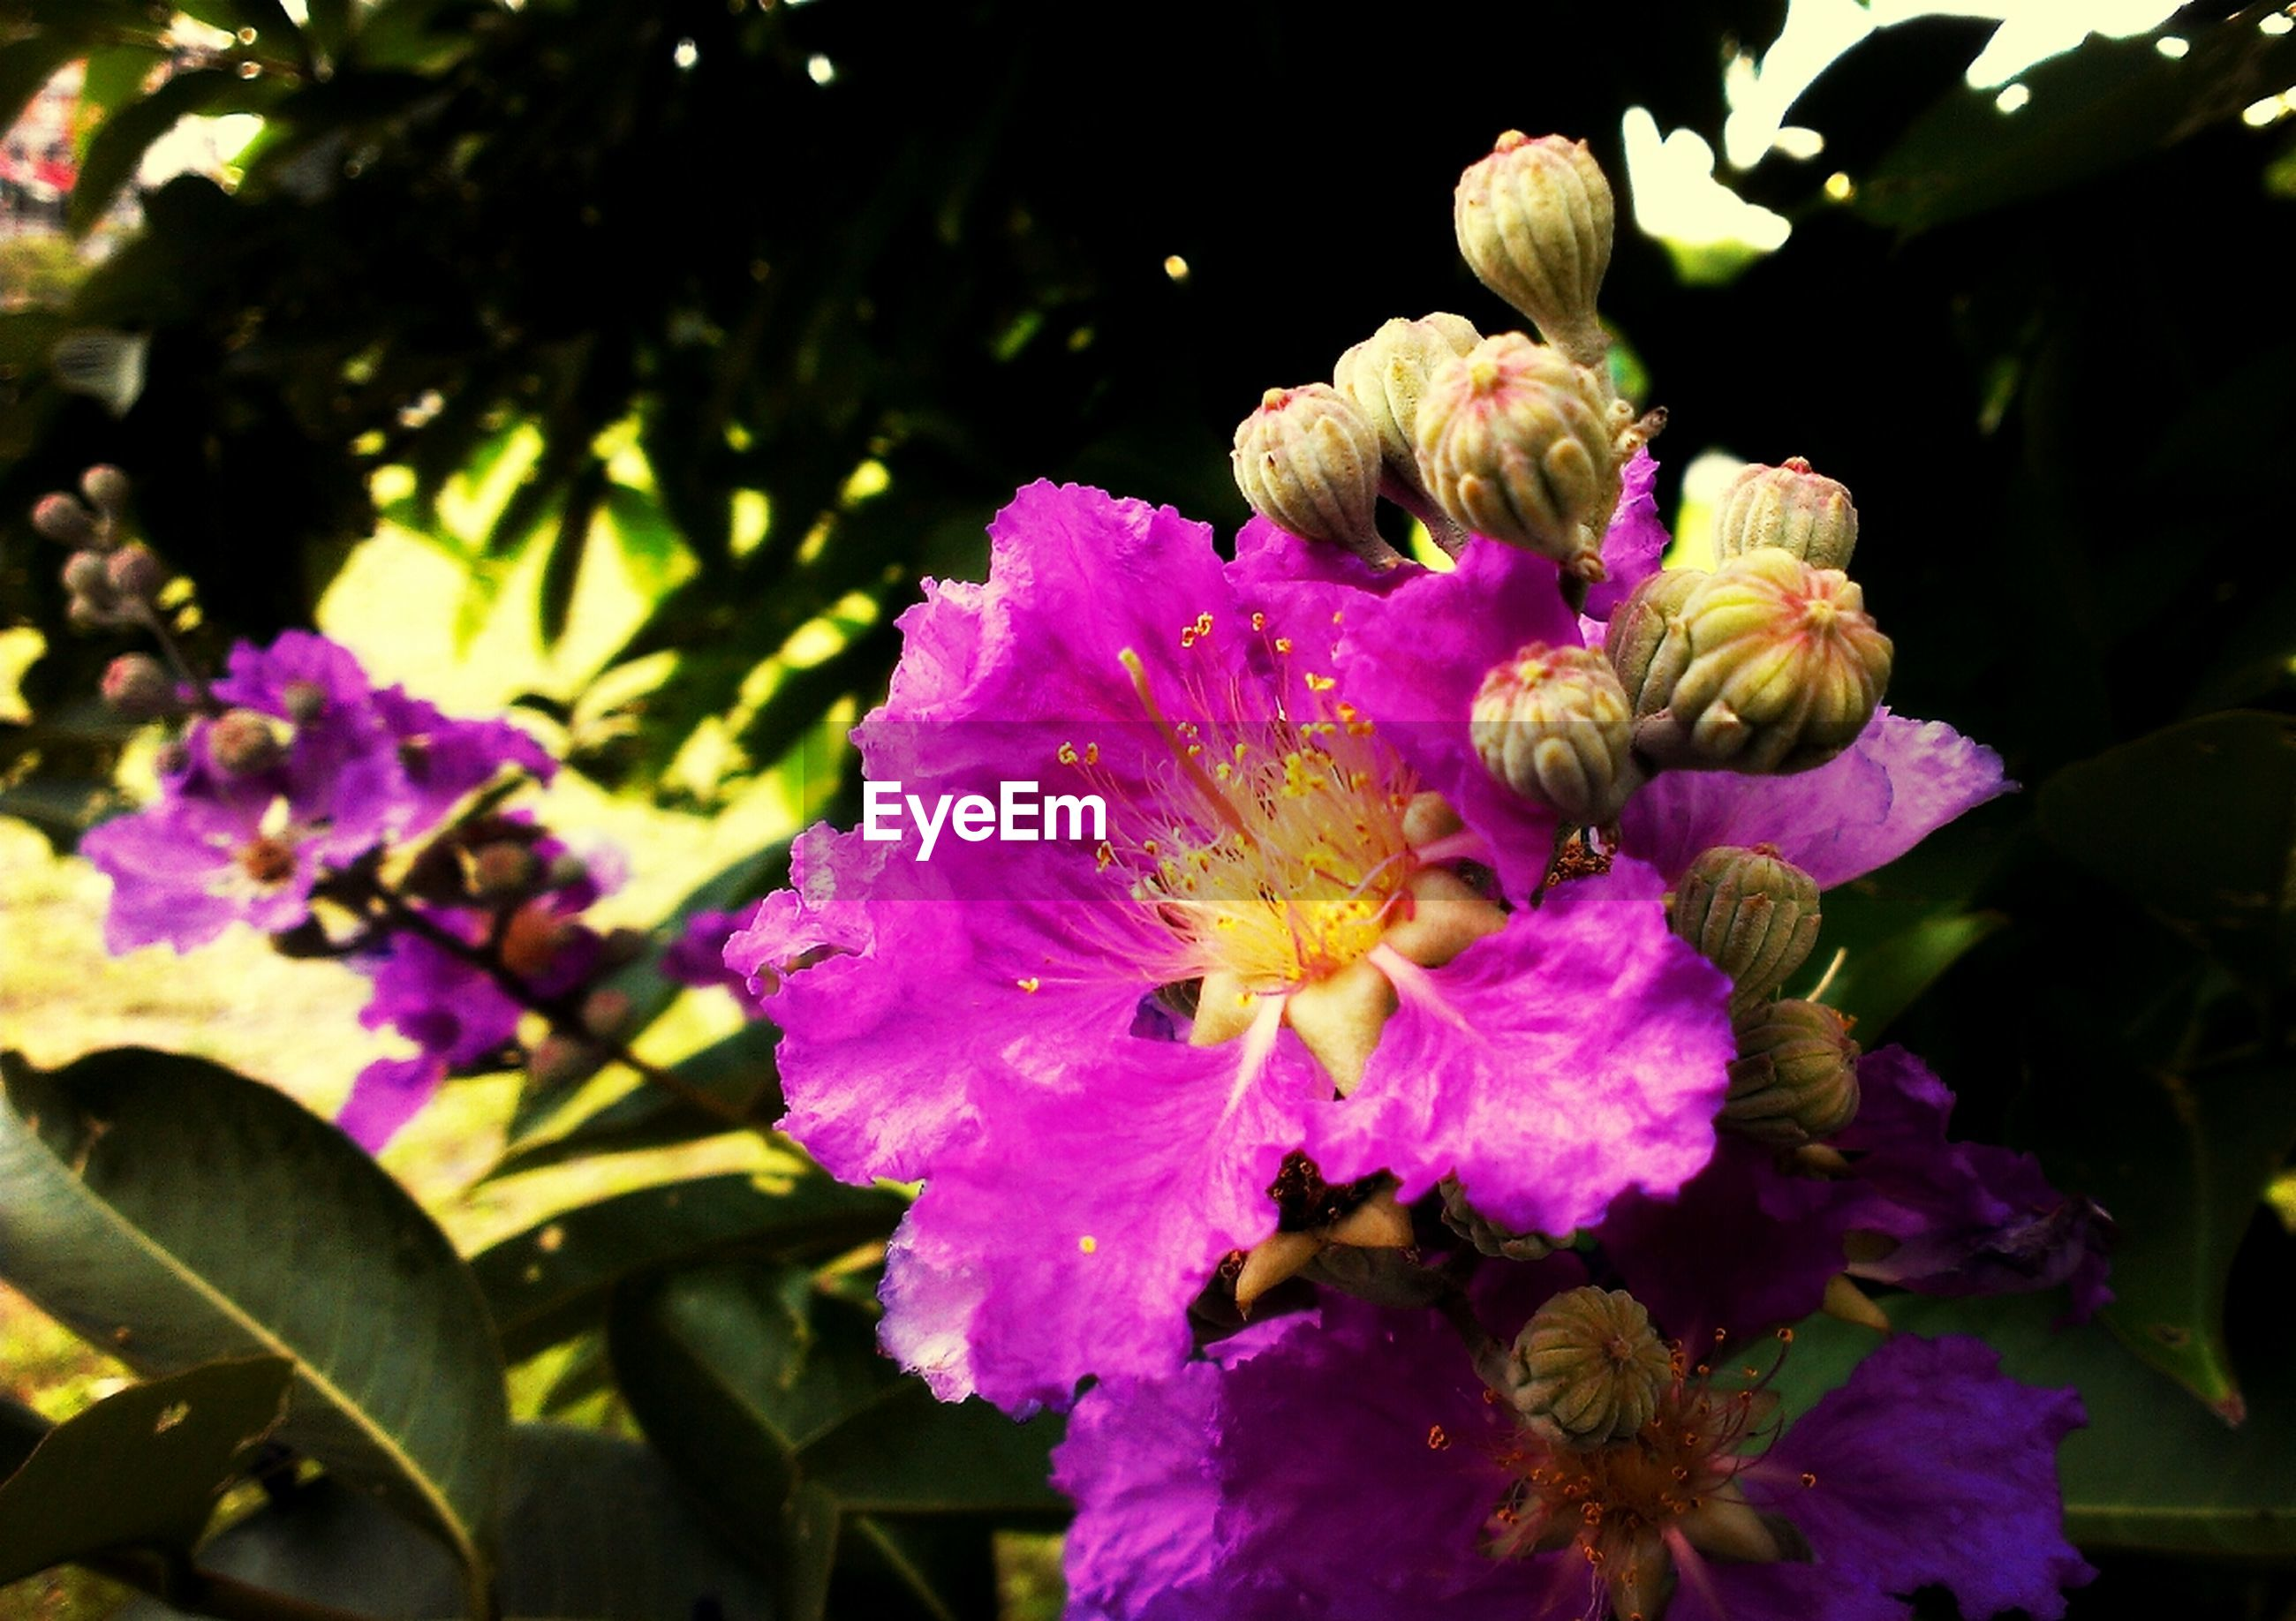 flower, petal, freshness, flower head, fragility, growth, purple, insect, beauty in nature, blooming, focus on foreground, one animal, plant, close-up, nature, pollination, animal themes, animals in the wild, park - man made space, in bloom